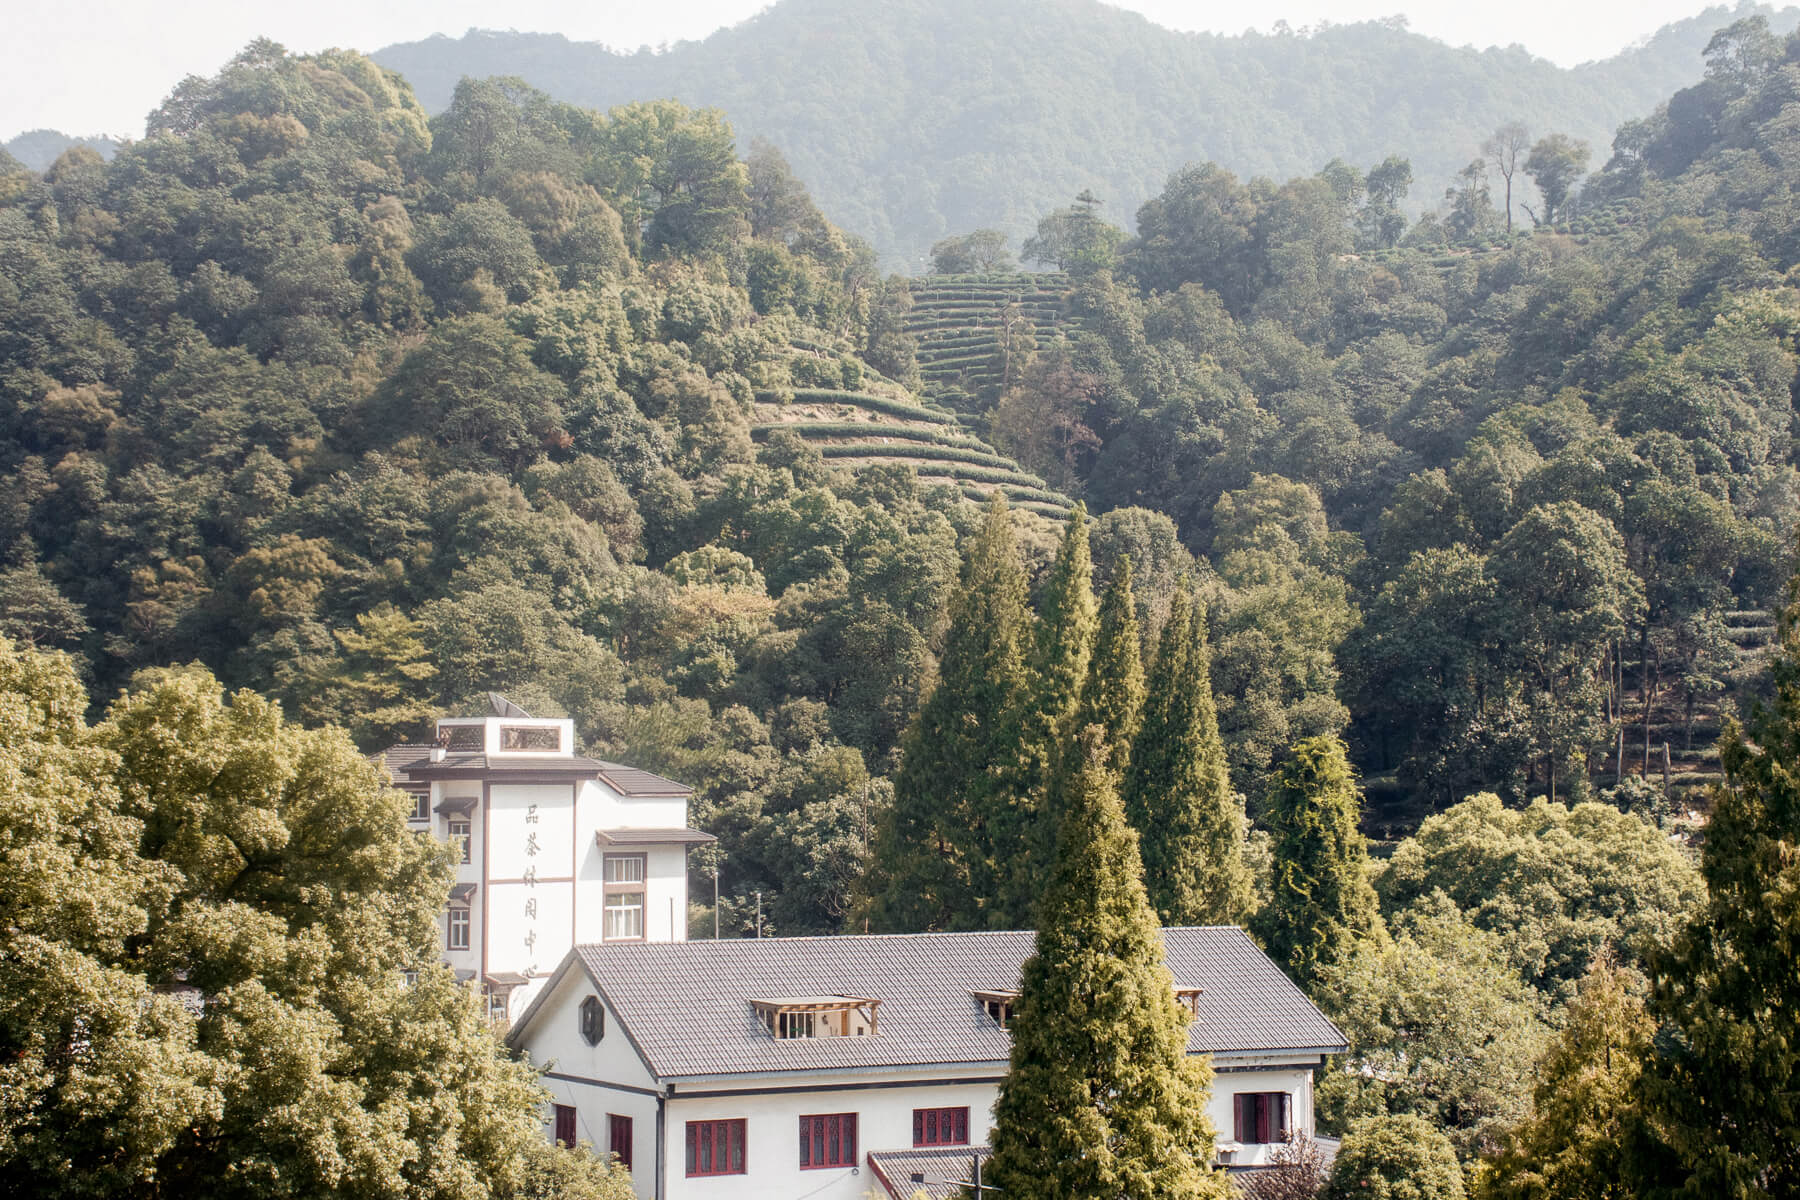 Overlooking the Chinese country side with beautiful white buildings, rolling hills and tea plantations - Hangzhou